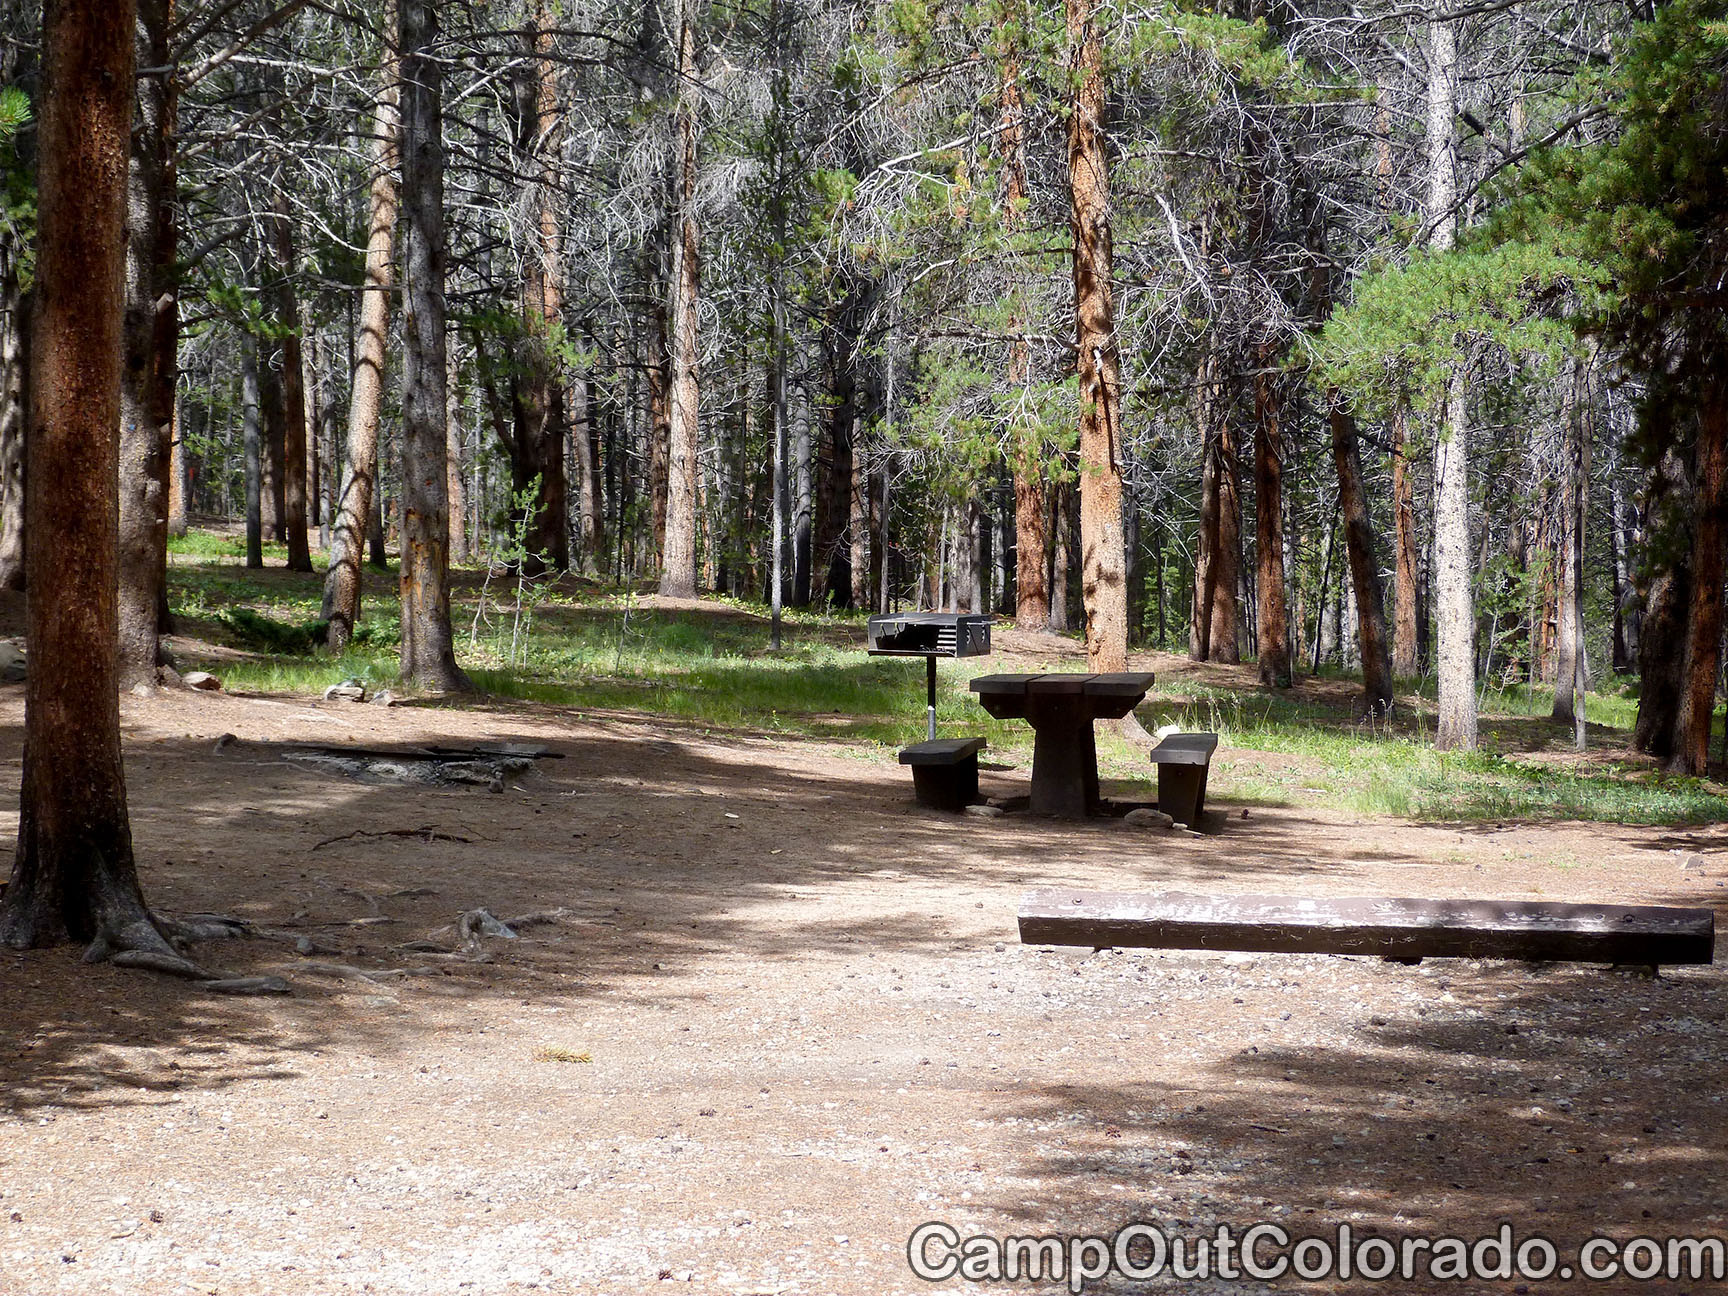 Camp-out-colorado-silver-dollar-turquoise-two-fire-pits